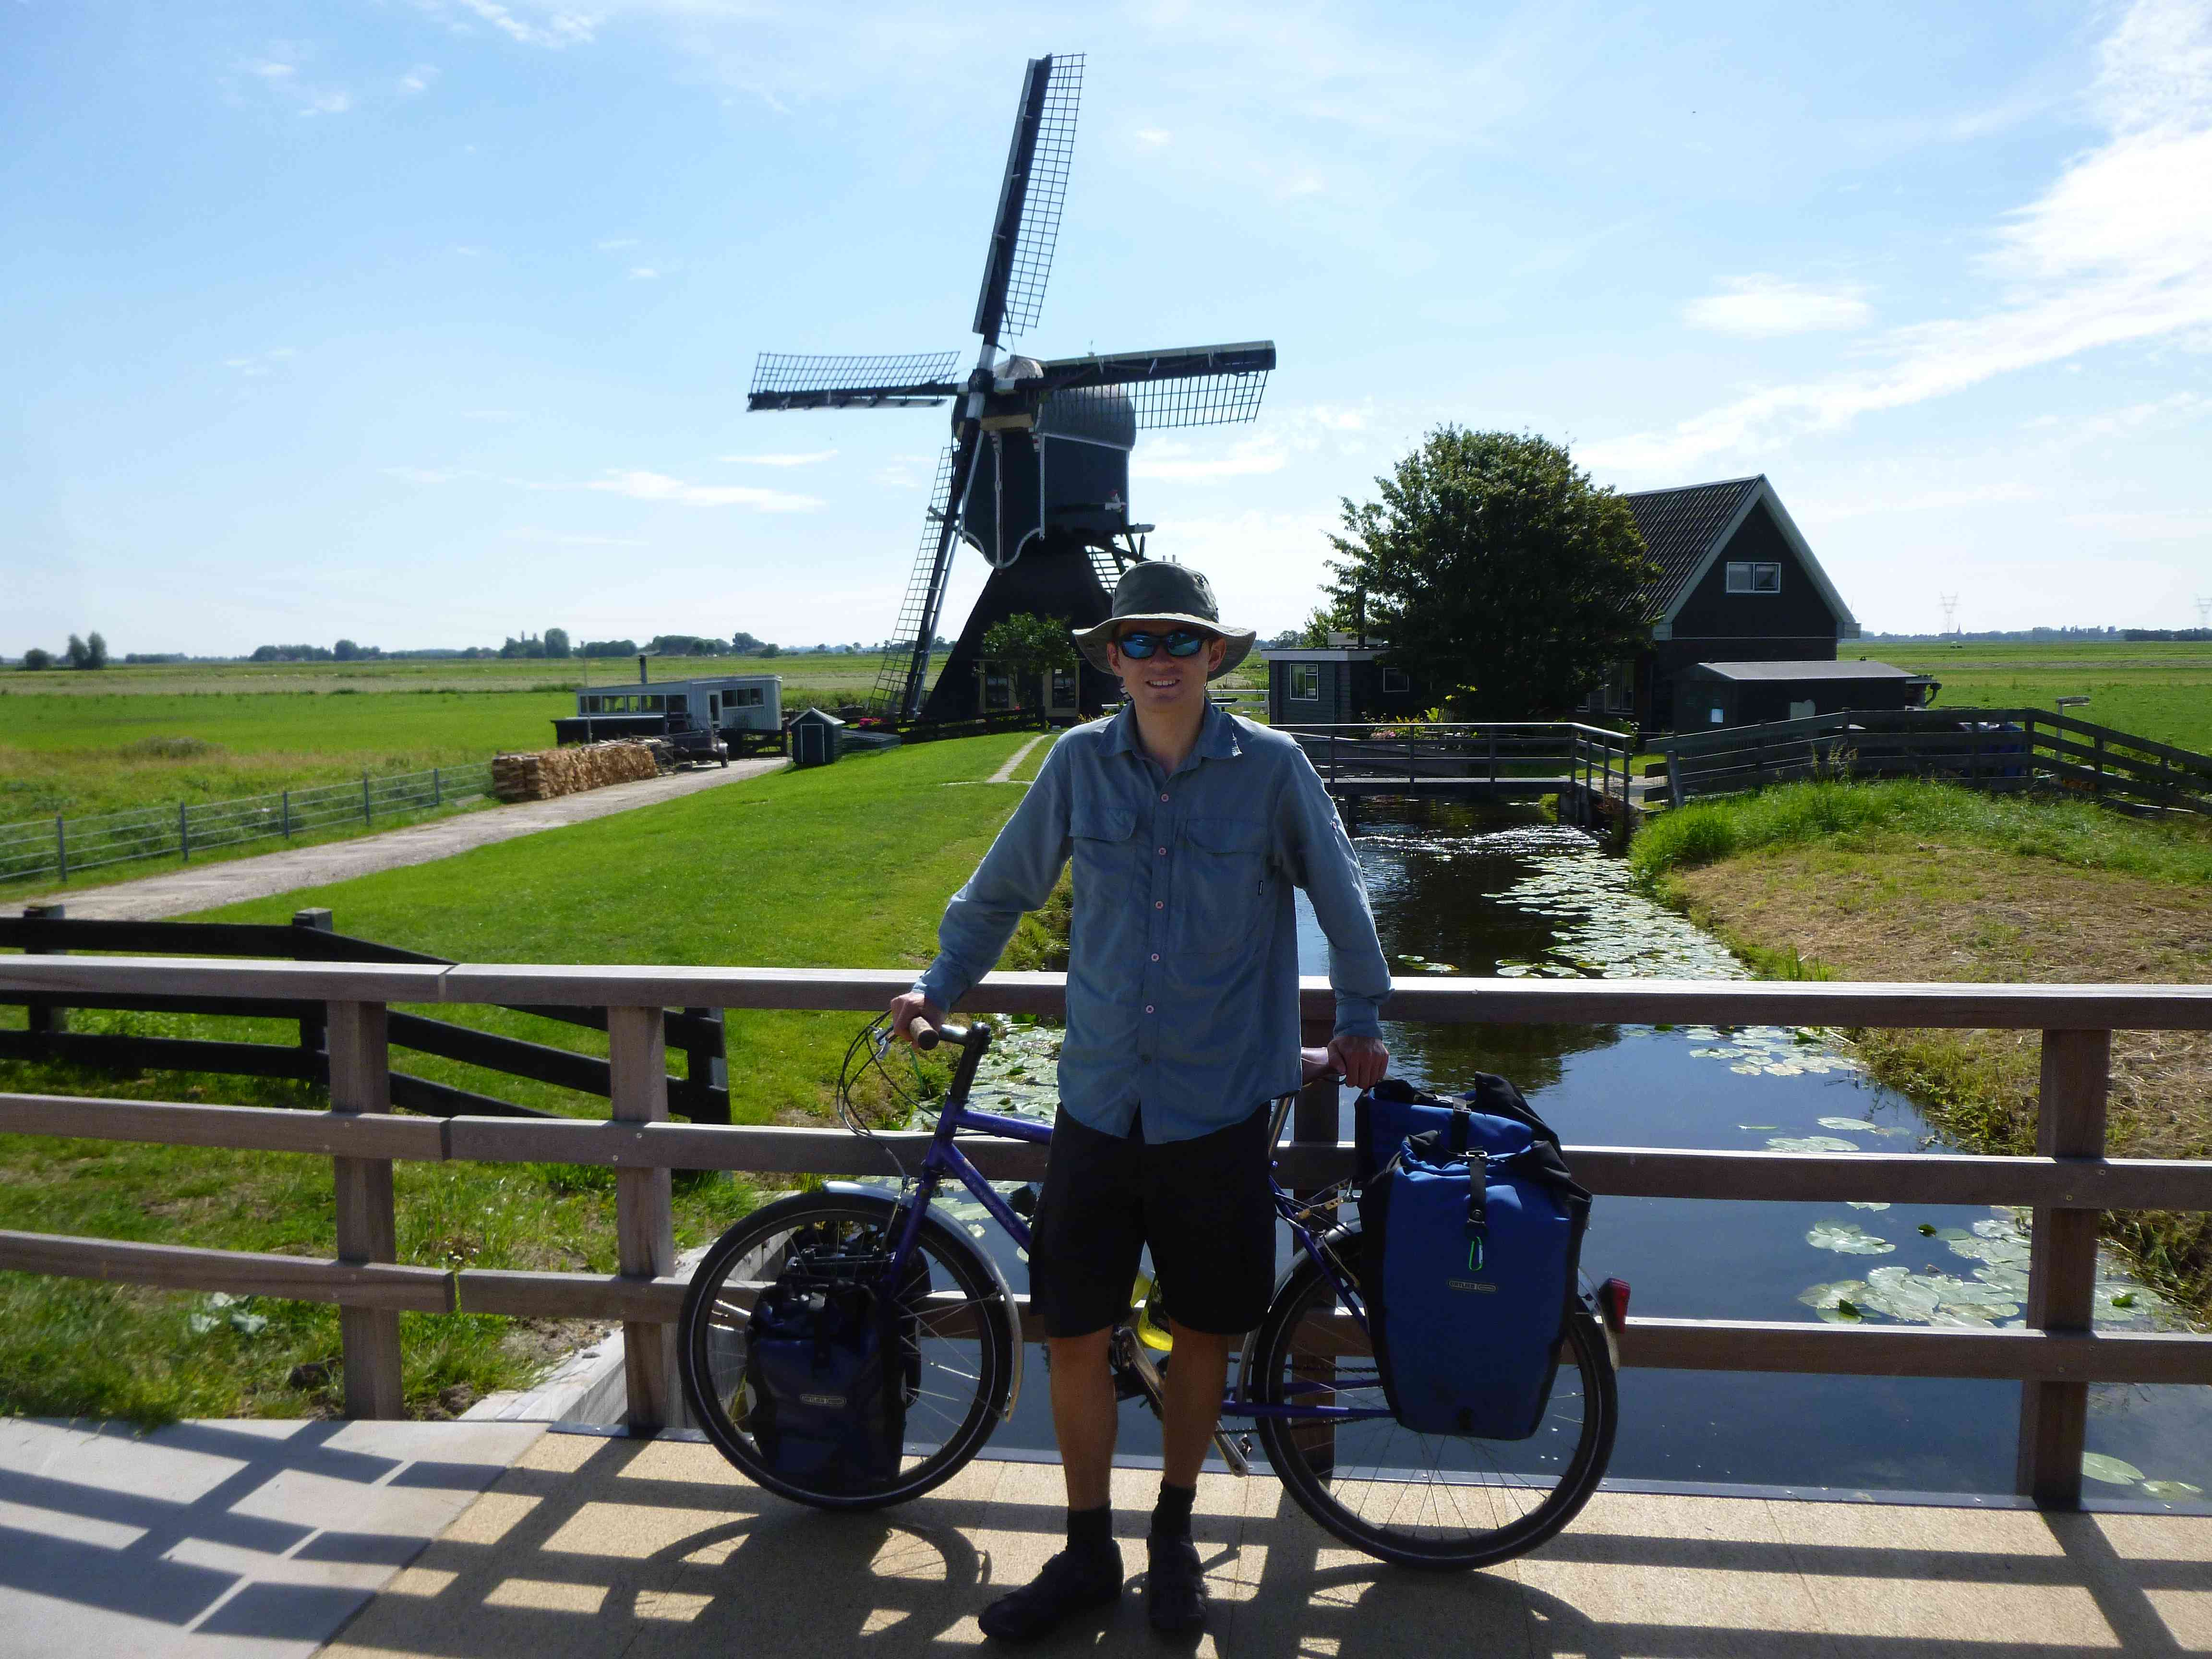 Bicycle touring through the Netherlands